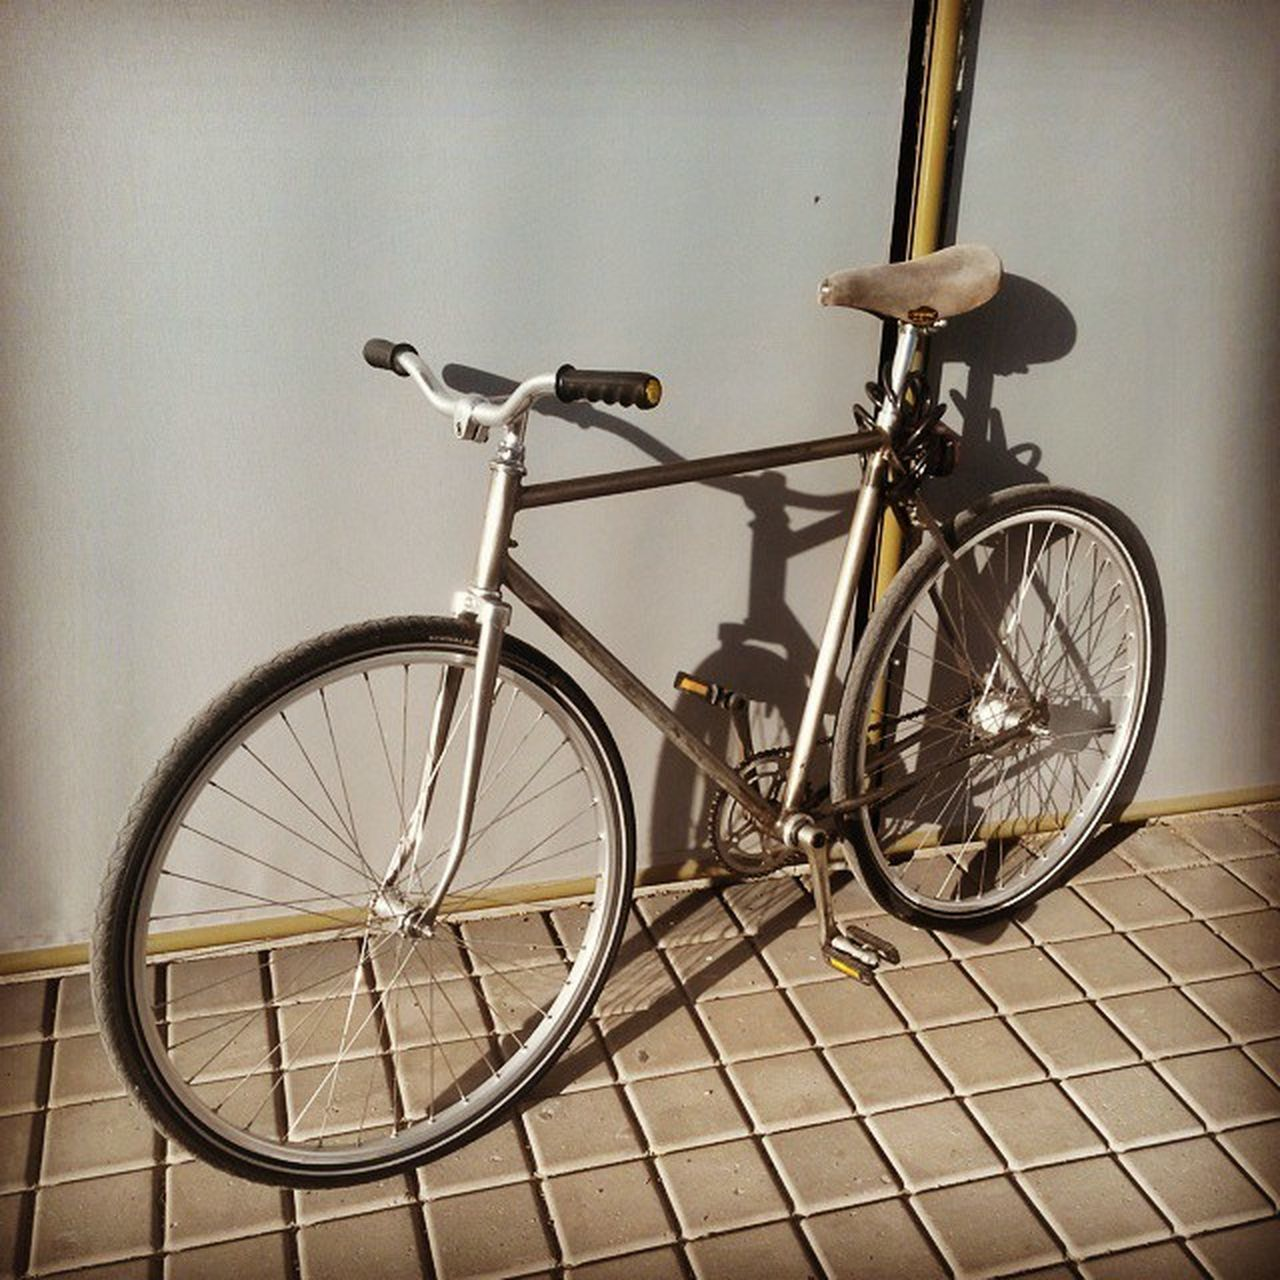 bicycle, transportation, mode of transport, land vehicle, stationary, no people, wheel, day, outdoors, bicycle rack, tire, close-up